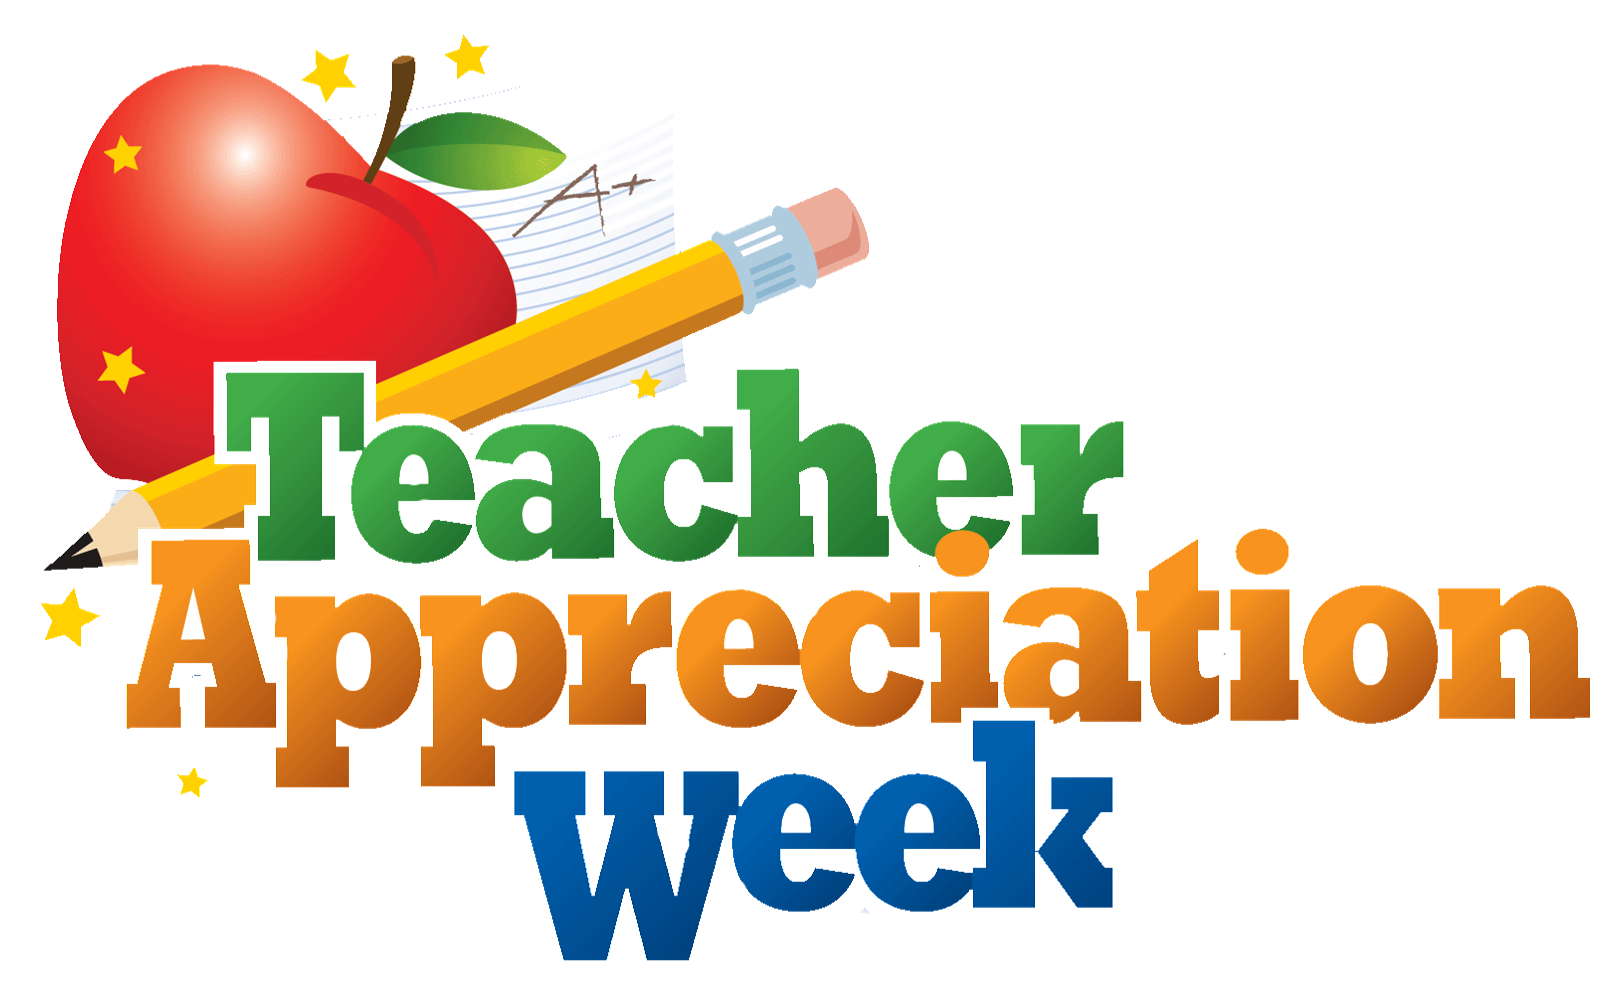 2018 clipart teacher appreciation week. Emerald christian academy share